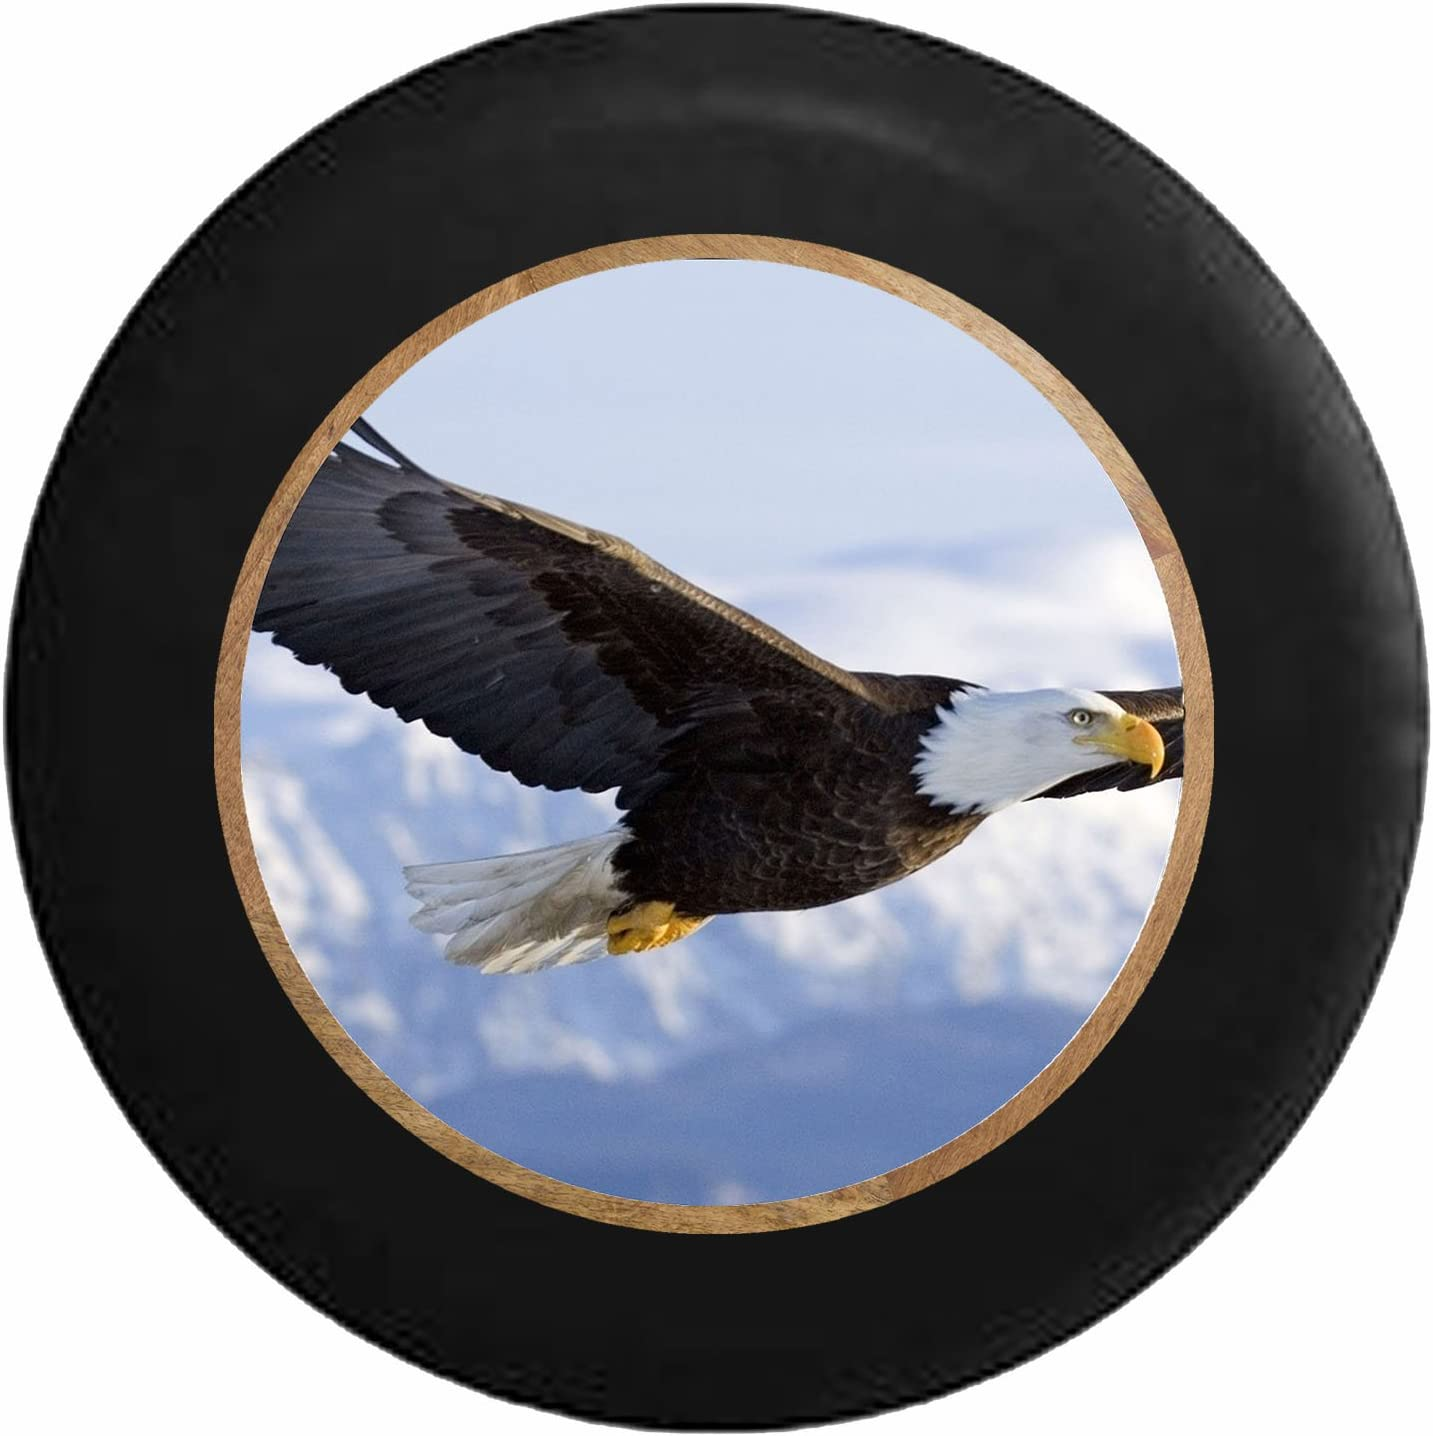 Pike Outdoors Full Color Soaring American Bald Eagle Land of The Free Spare Tire Cover fits SUV Camper RV Accessories Black 26-27.5 in